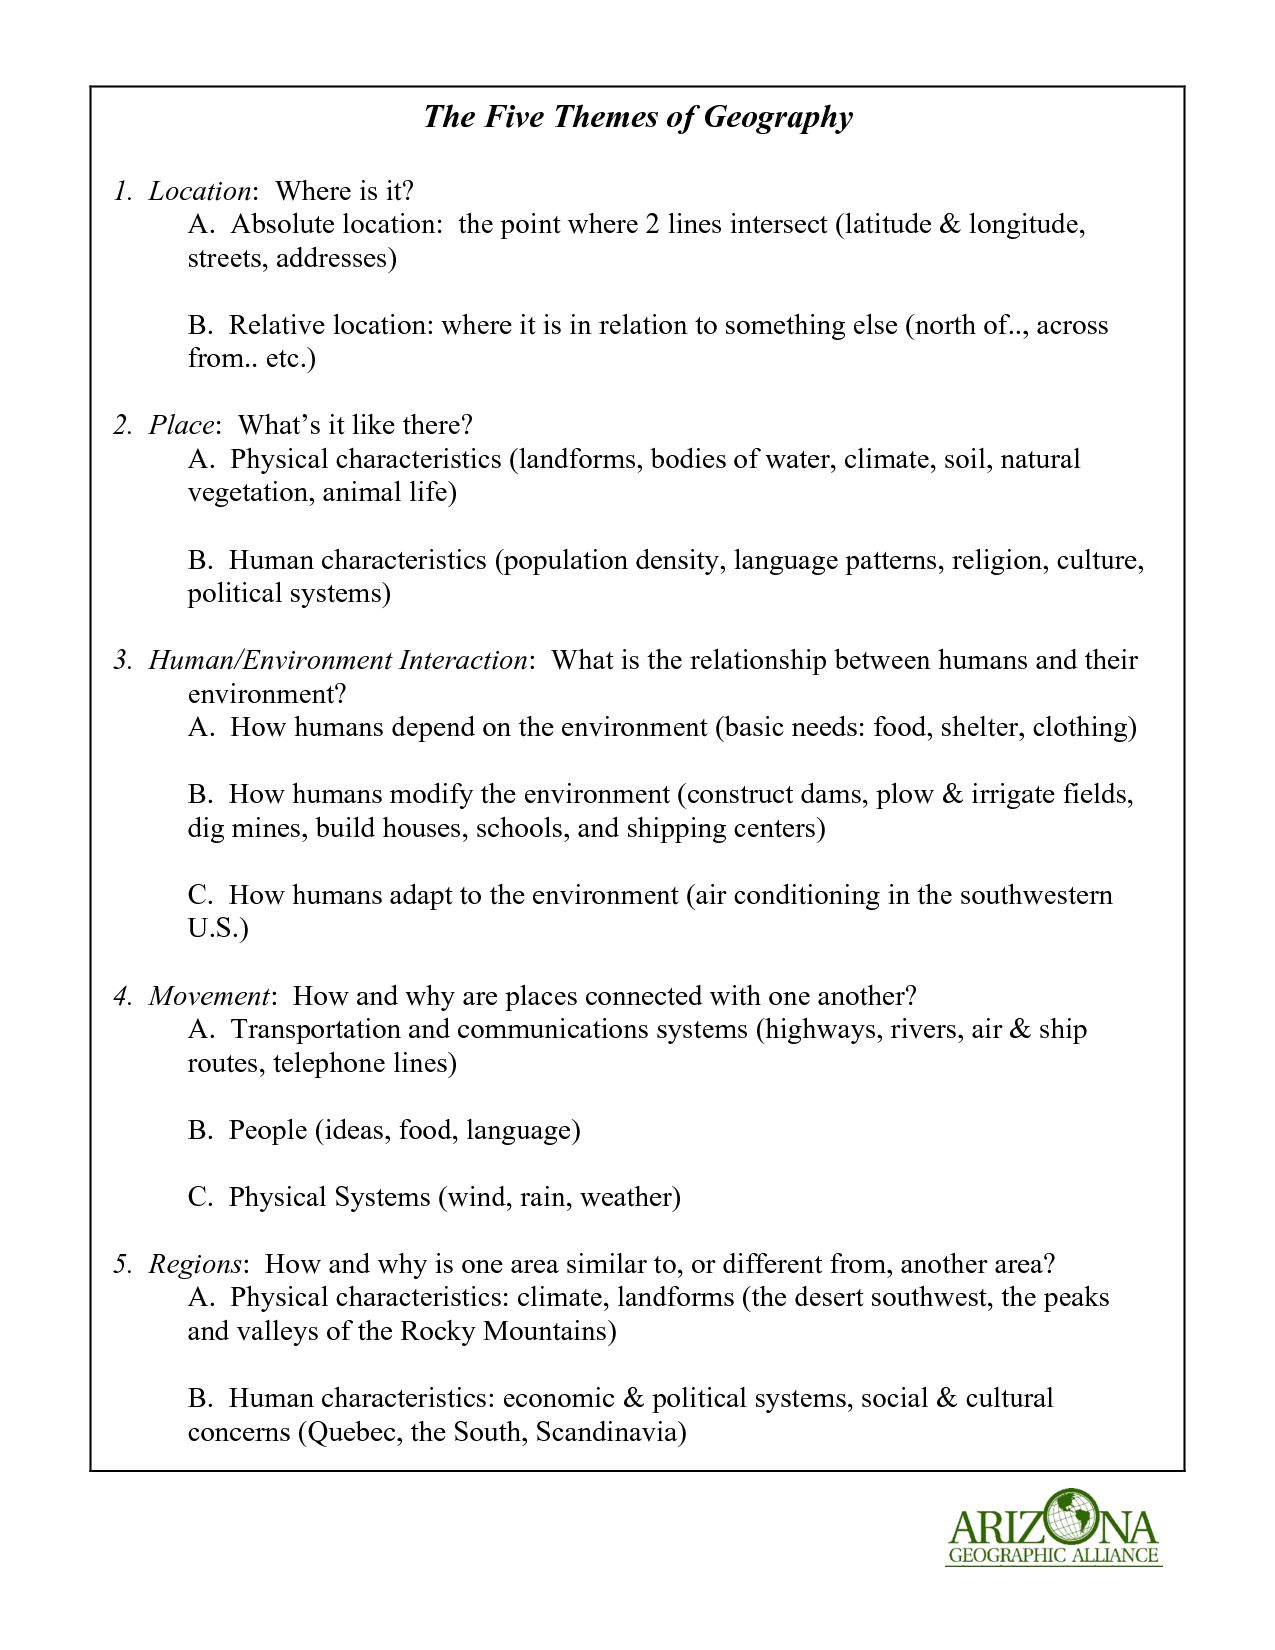 Worksheets Latitude And Longitude Worksheets 6th Grade 5 themes of geography printable 18 best images five worksheets of